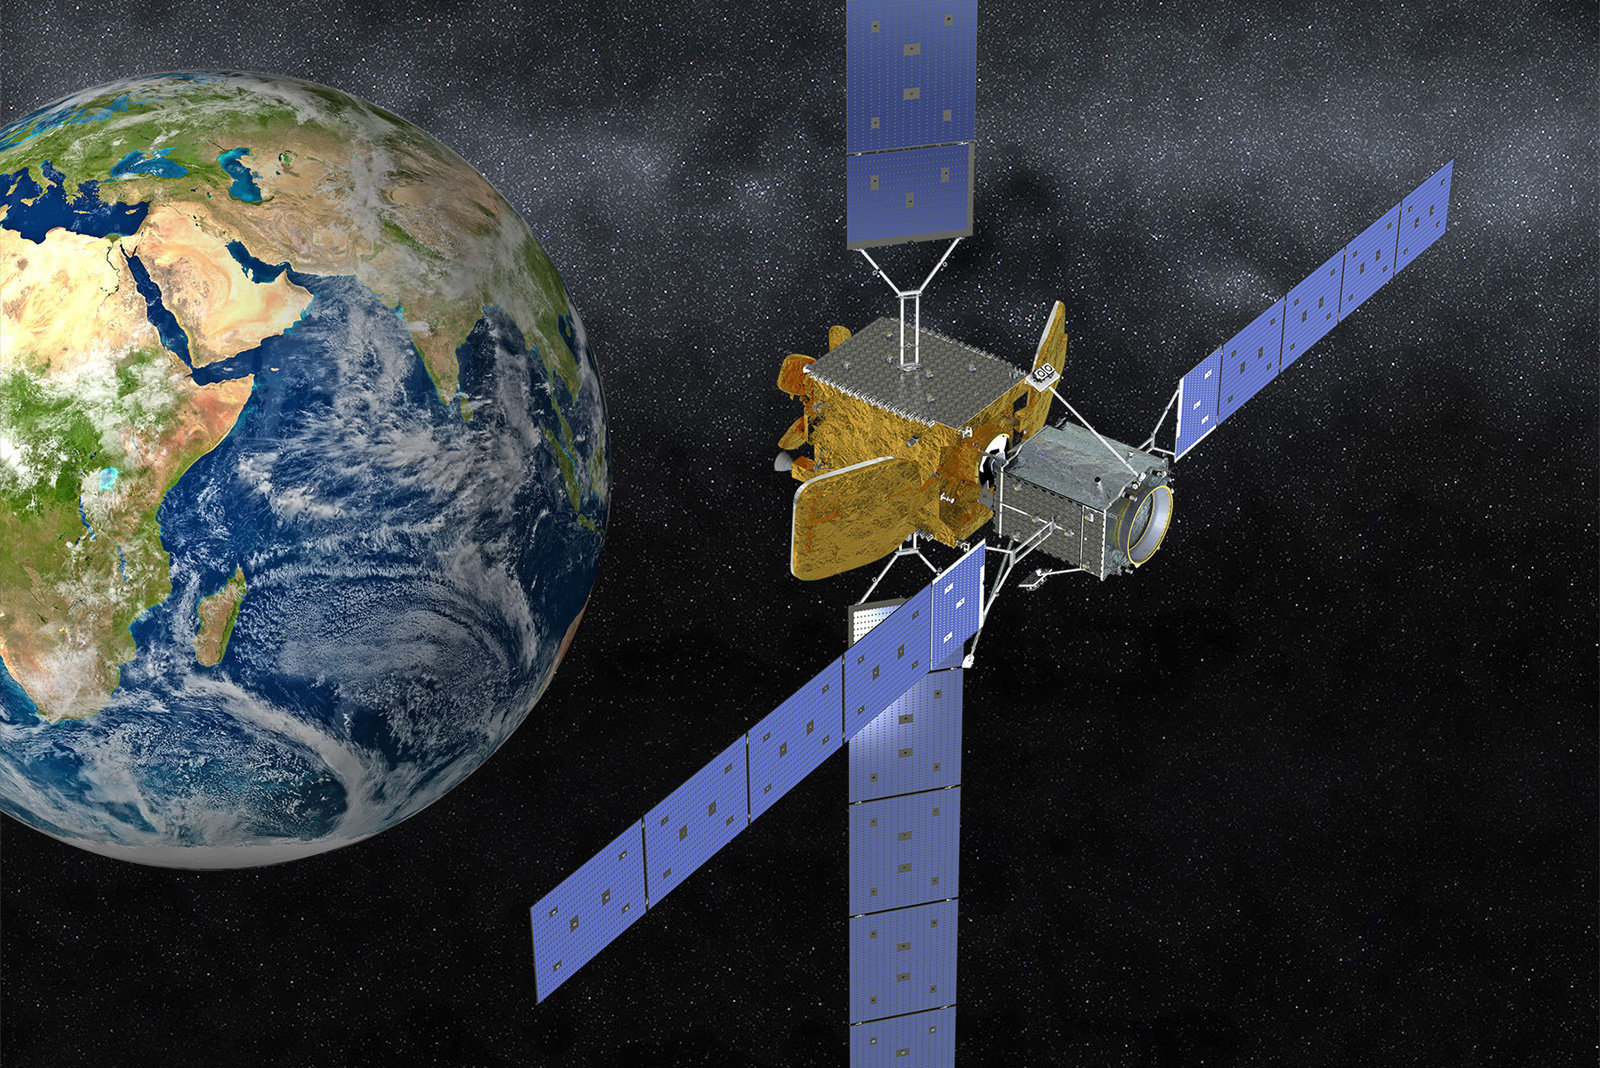 Mission Extension Vehicle-1 launches to save space from zombie satellites